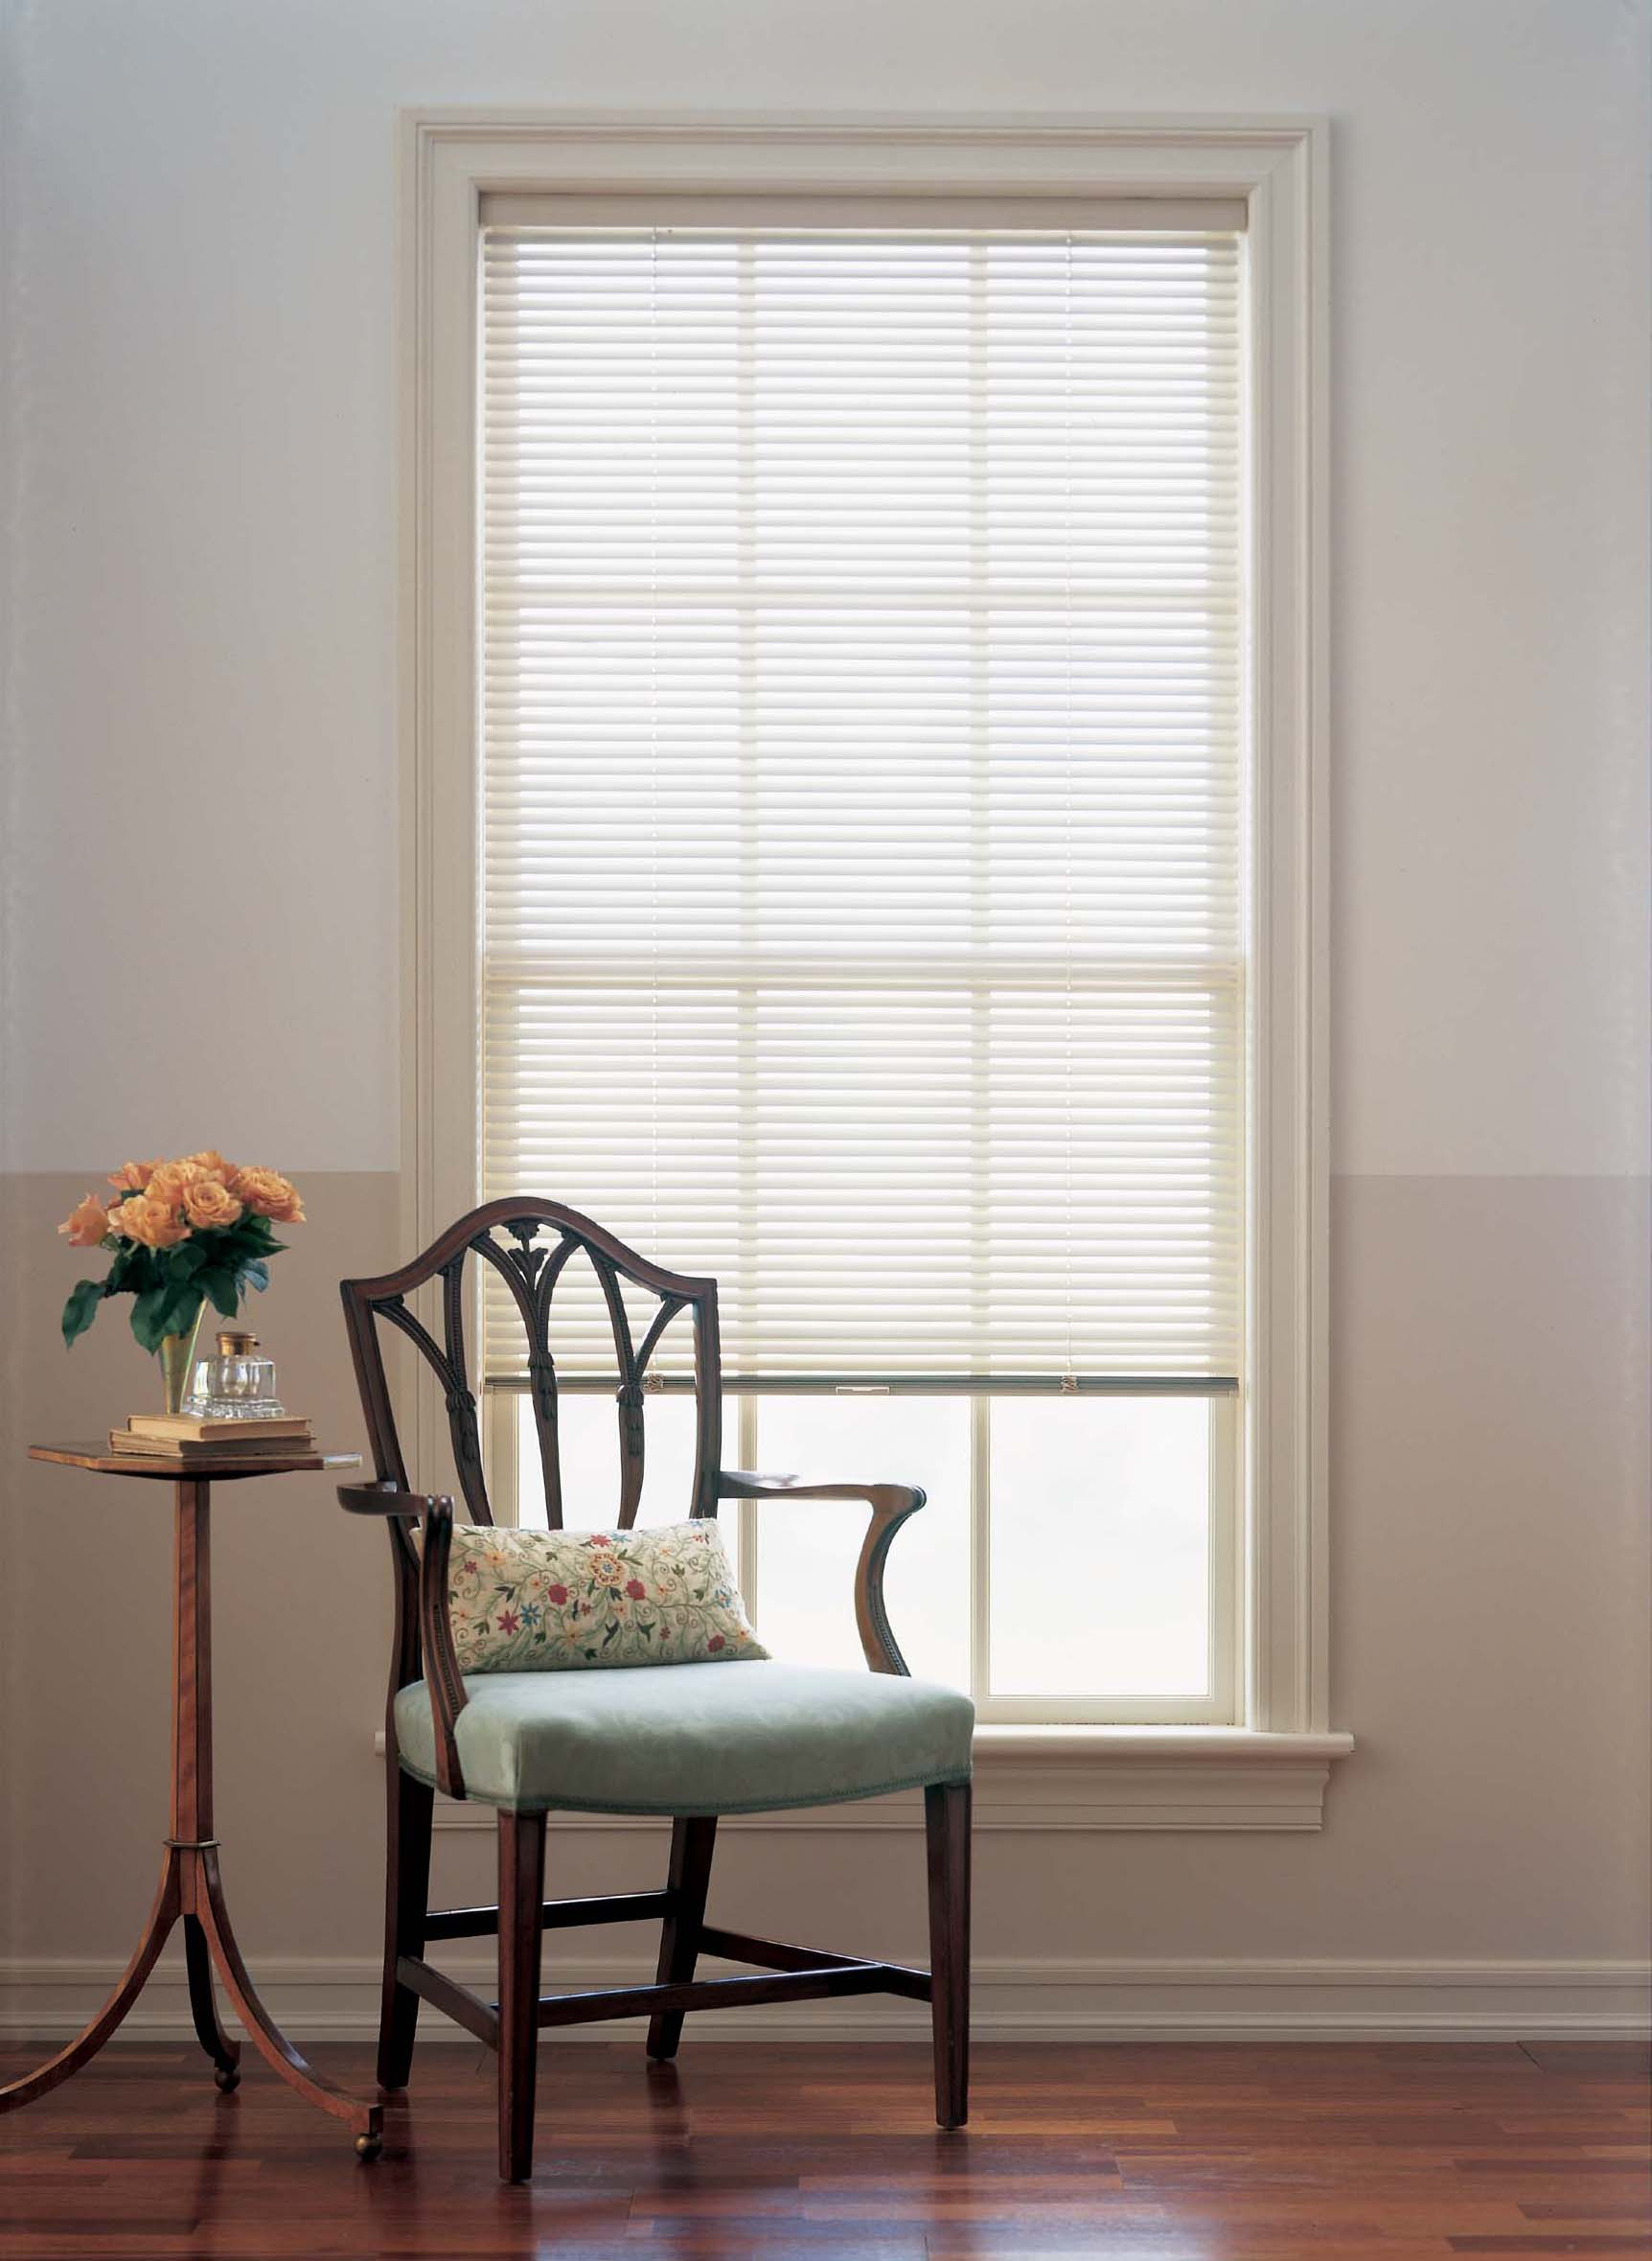 mini blind venetian a pinterest bathroom micro wooden with pelmet blinds pin